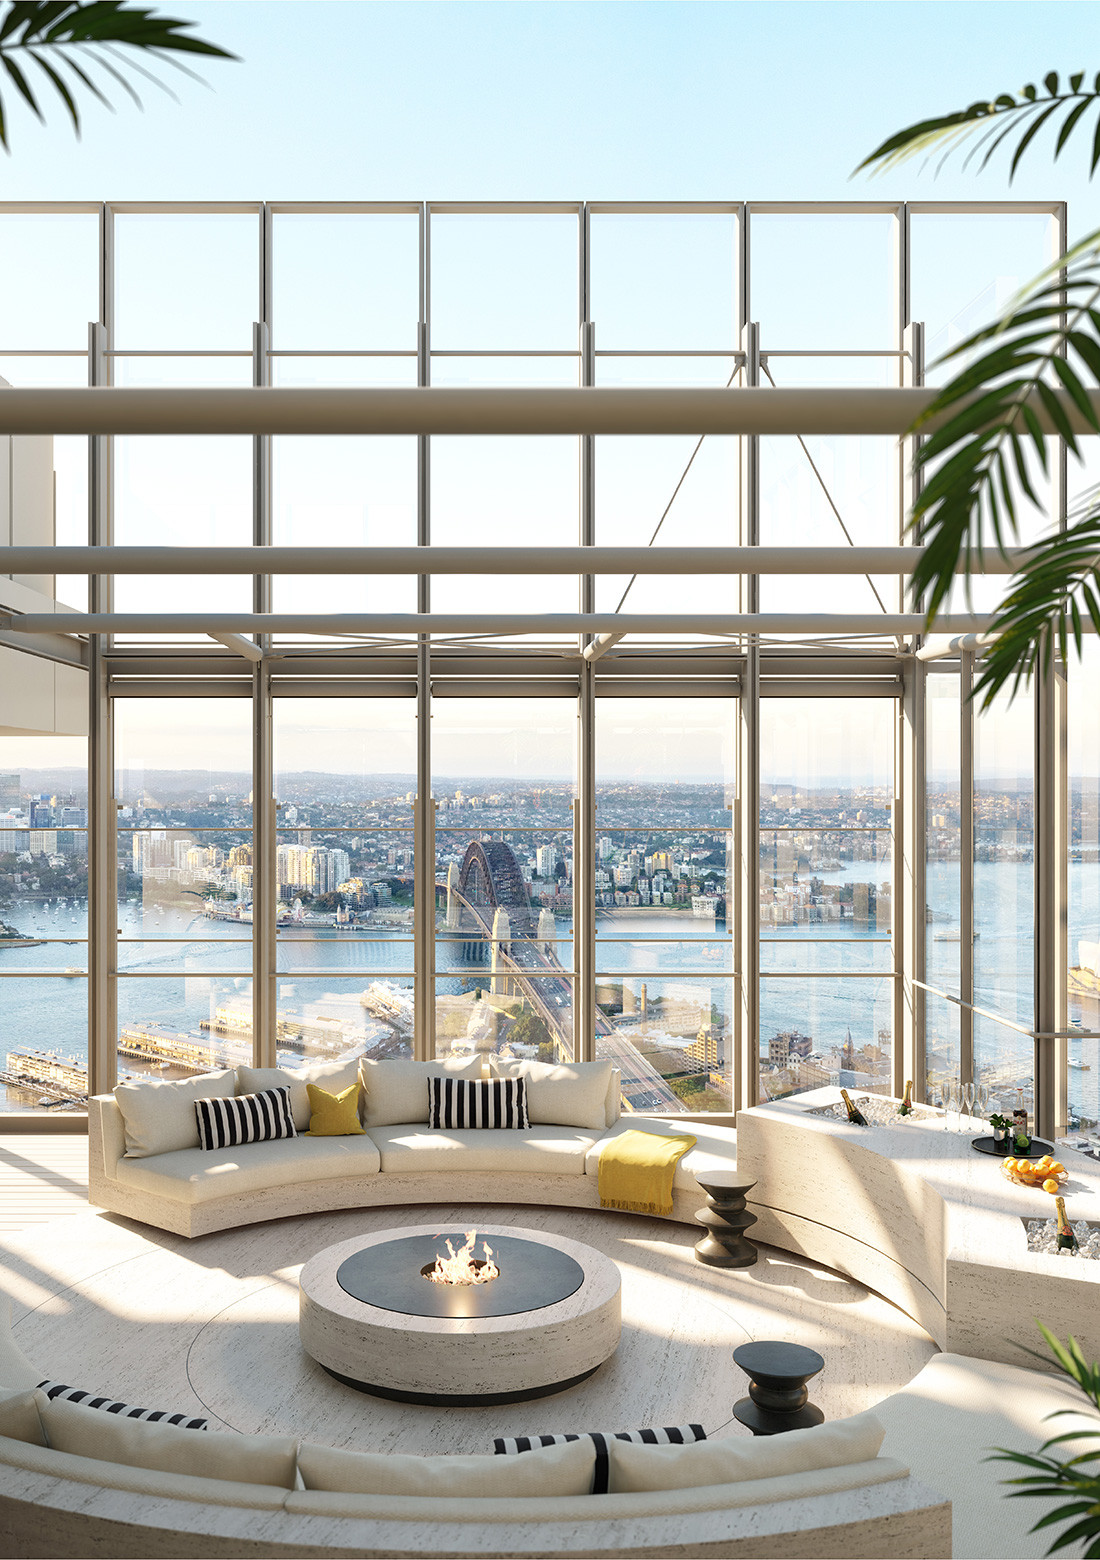 The penthouse 'Skyhomes' of Residences Two, One Sydney Harbour, will each boast panoramic views of Sydney. Artists impression only, design subject to change.